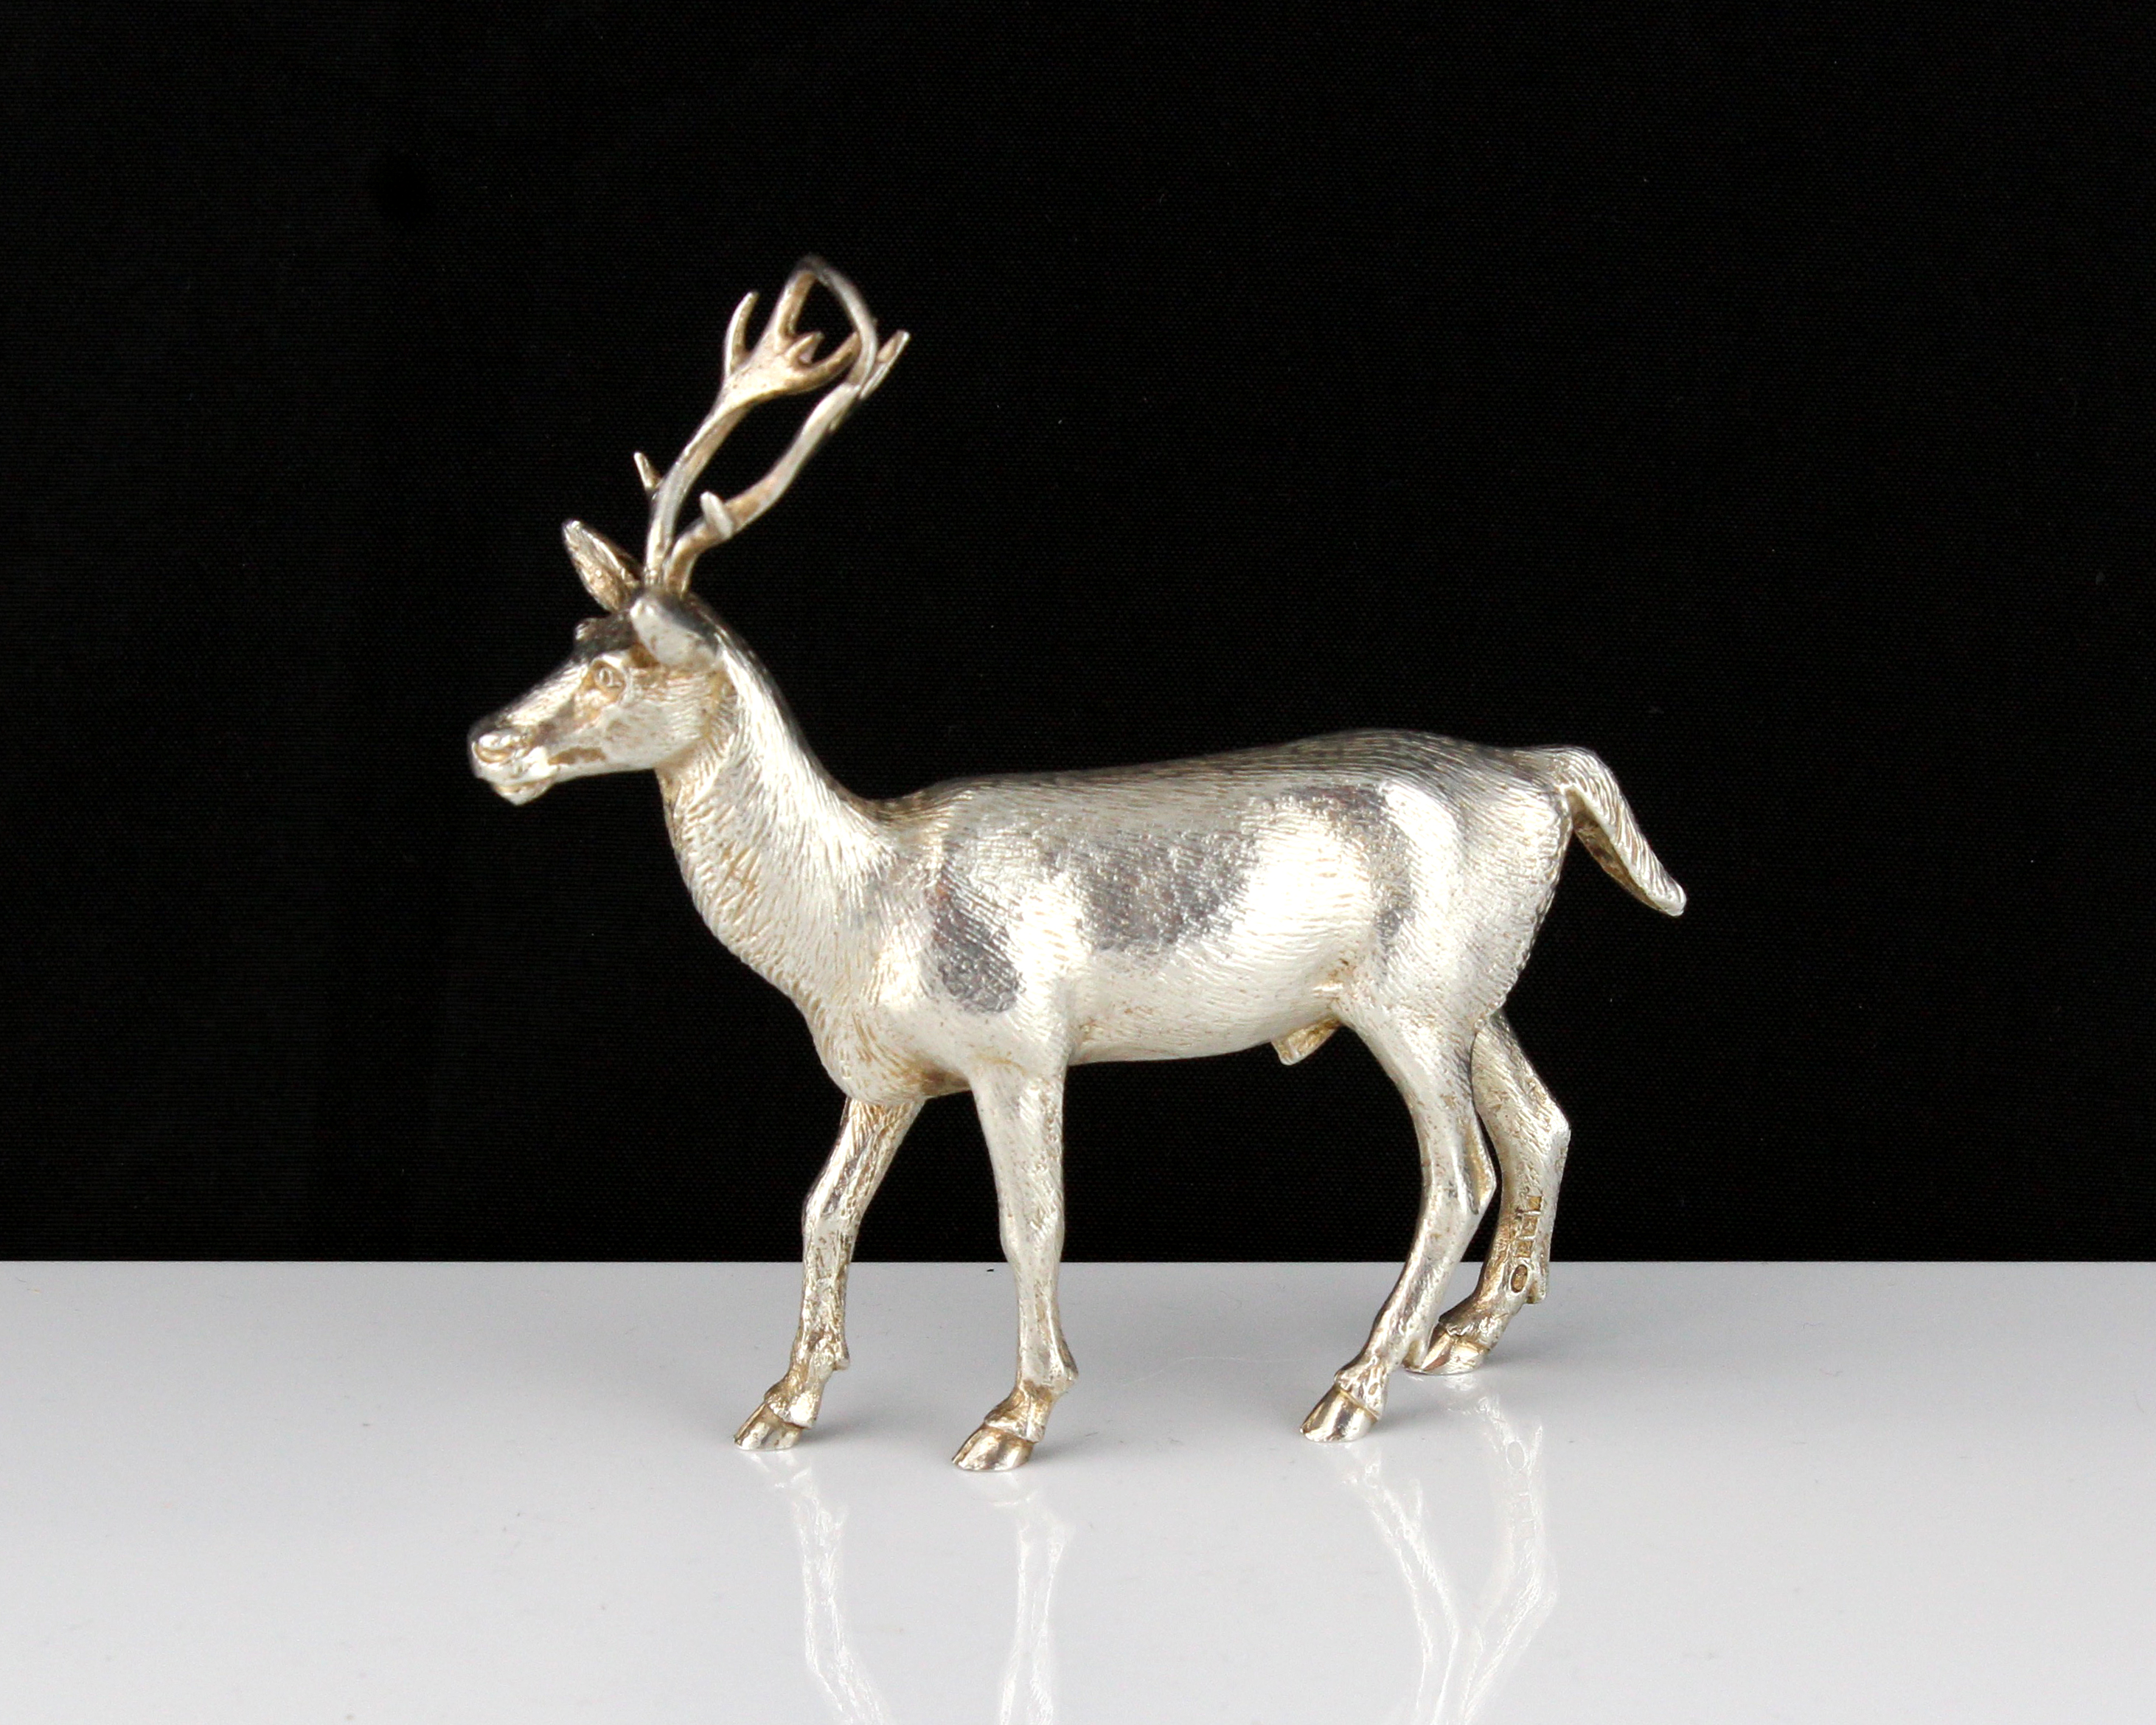 A vintage Sterling Silver statue of a stag by A E Jones, Birmingham 1973 designed to depict a stag